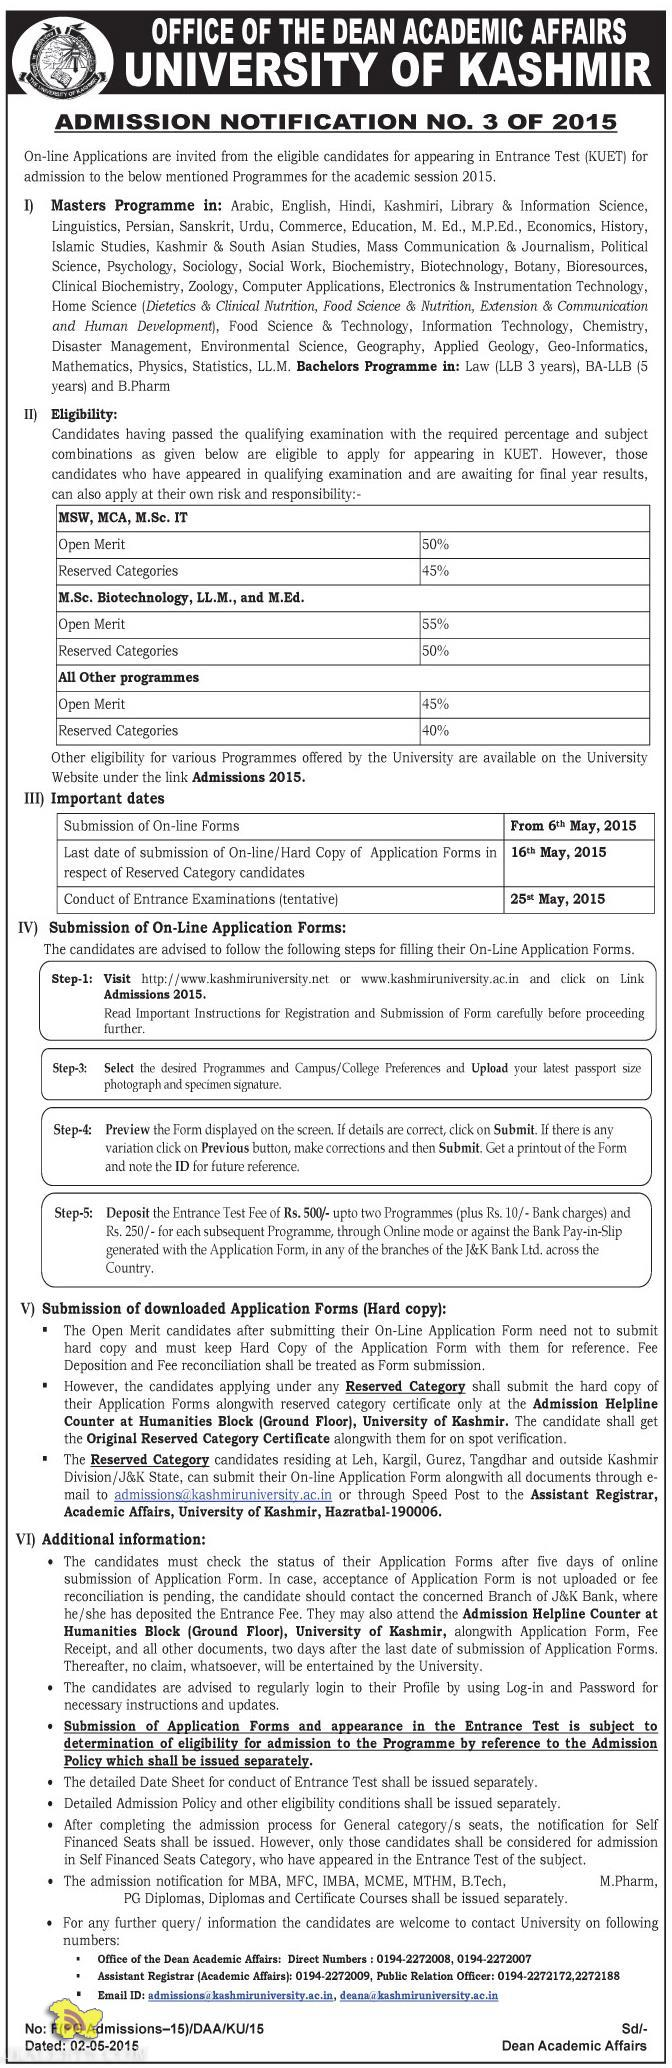 UNIVERSITY OF KASHMIR ADMISSION NOTIFICATION NO. 3 OF 2015